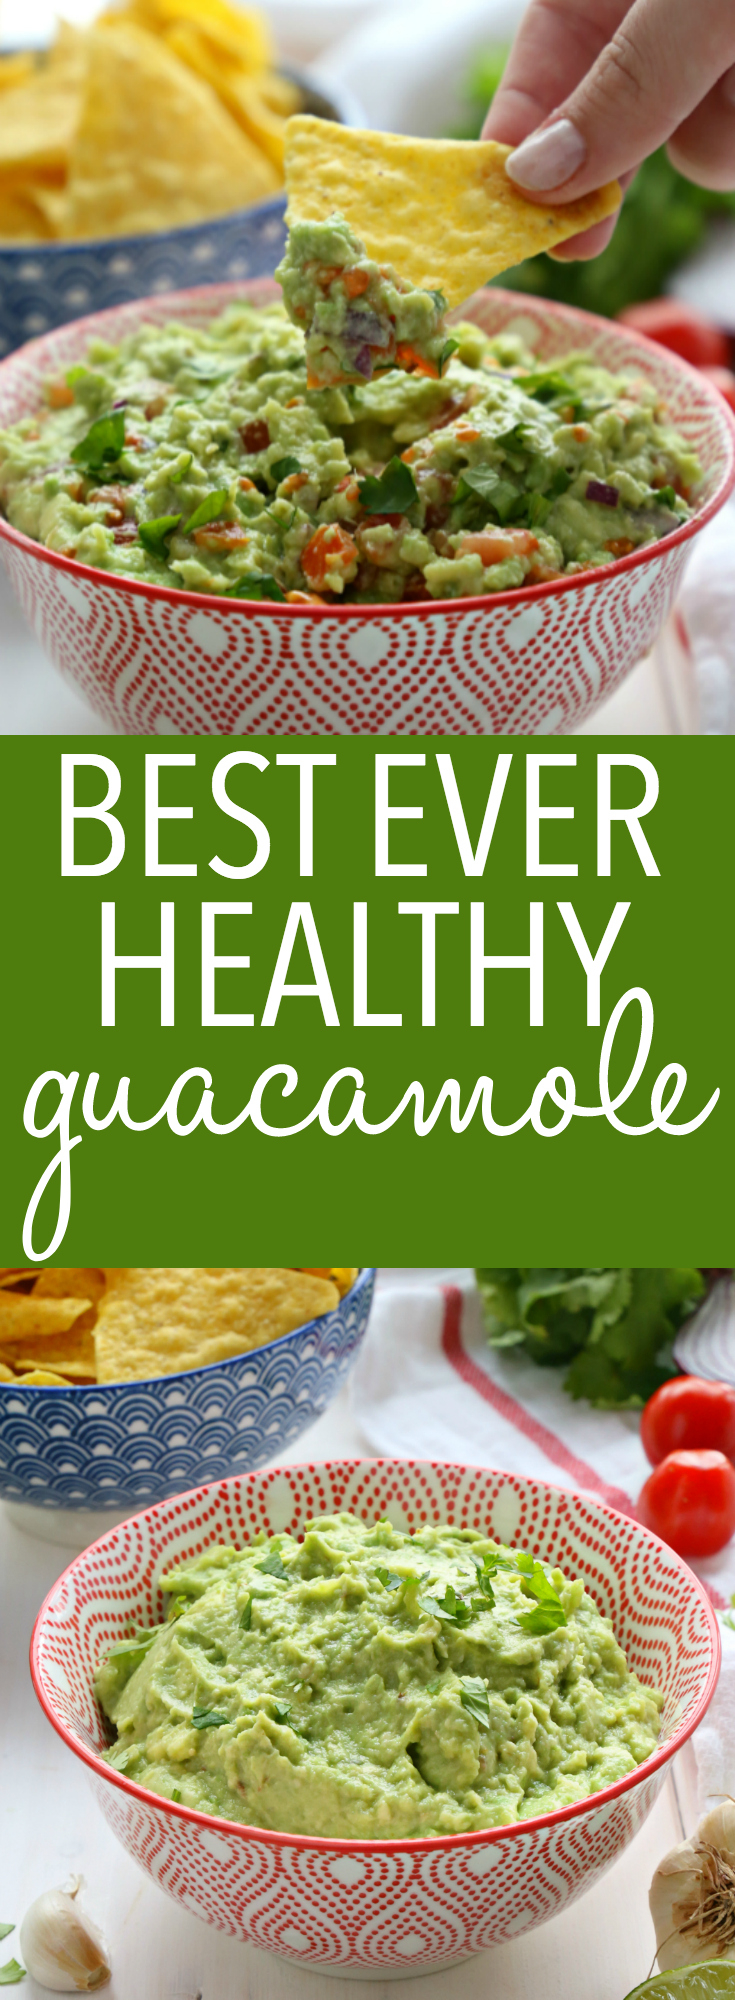 This Best Ever Healthy Guacamole is truly the best guacamole you'll ever taste, and it's packed with fresh, healthy ingredients! Make it in just minutes! Recipe from thebusybaker.ca! #easyguacamole #healthyguacamole #healthydiprecipe